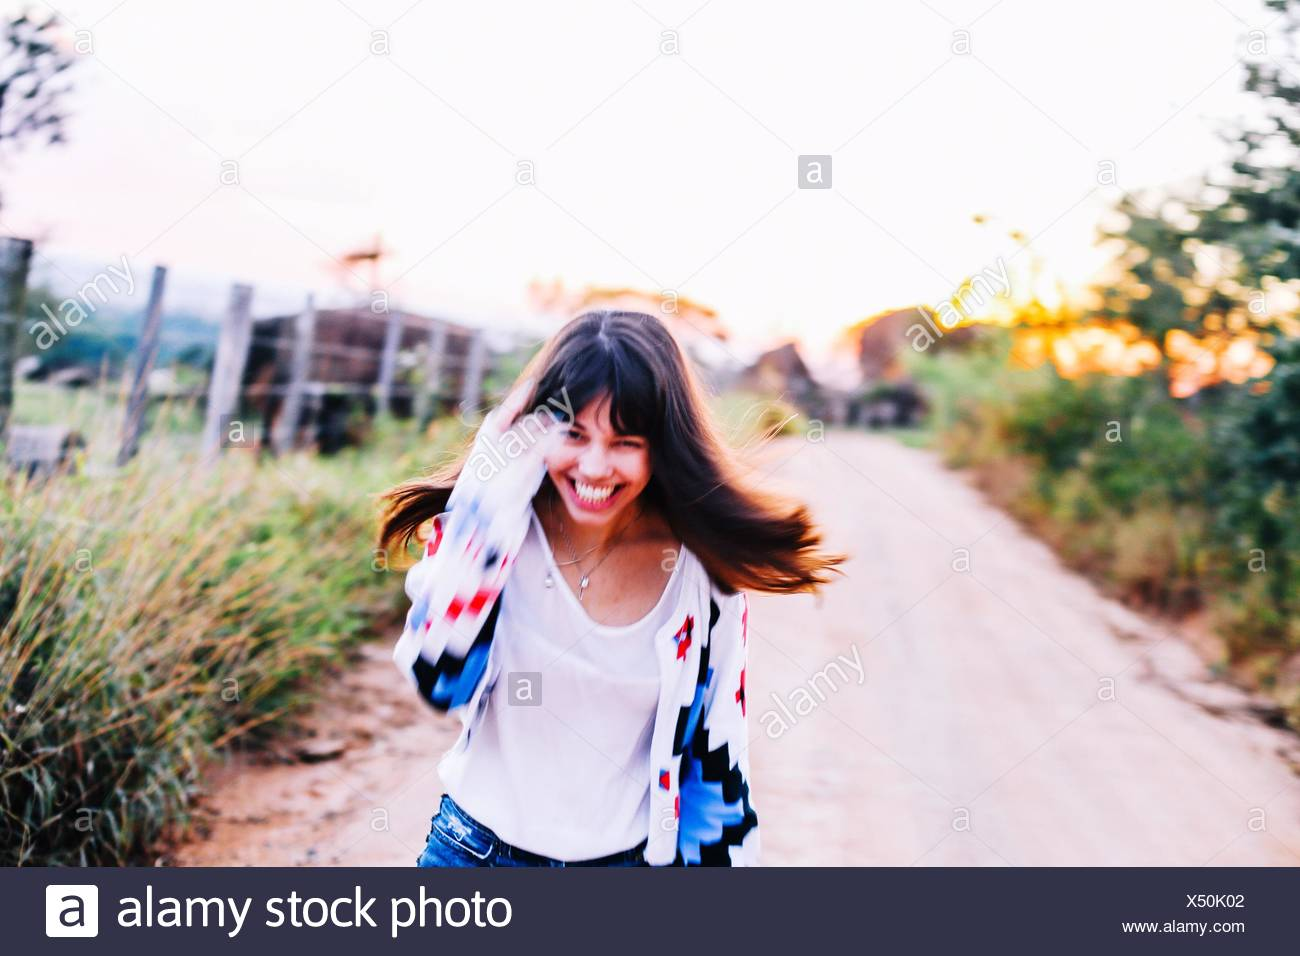 Portrait Of Happy Young Woman Running On Road au milieu de plantes contre Ciel clair Photo Stock